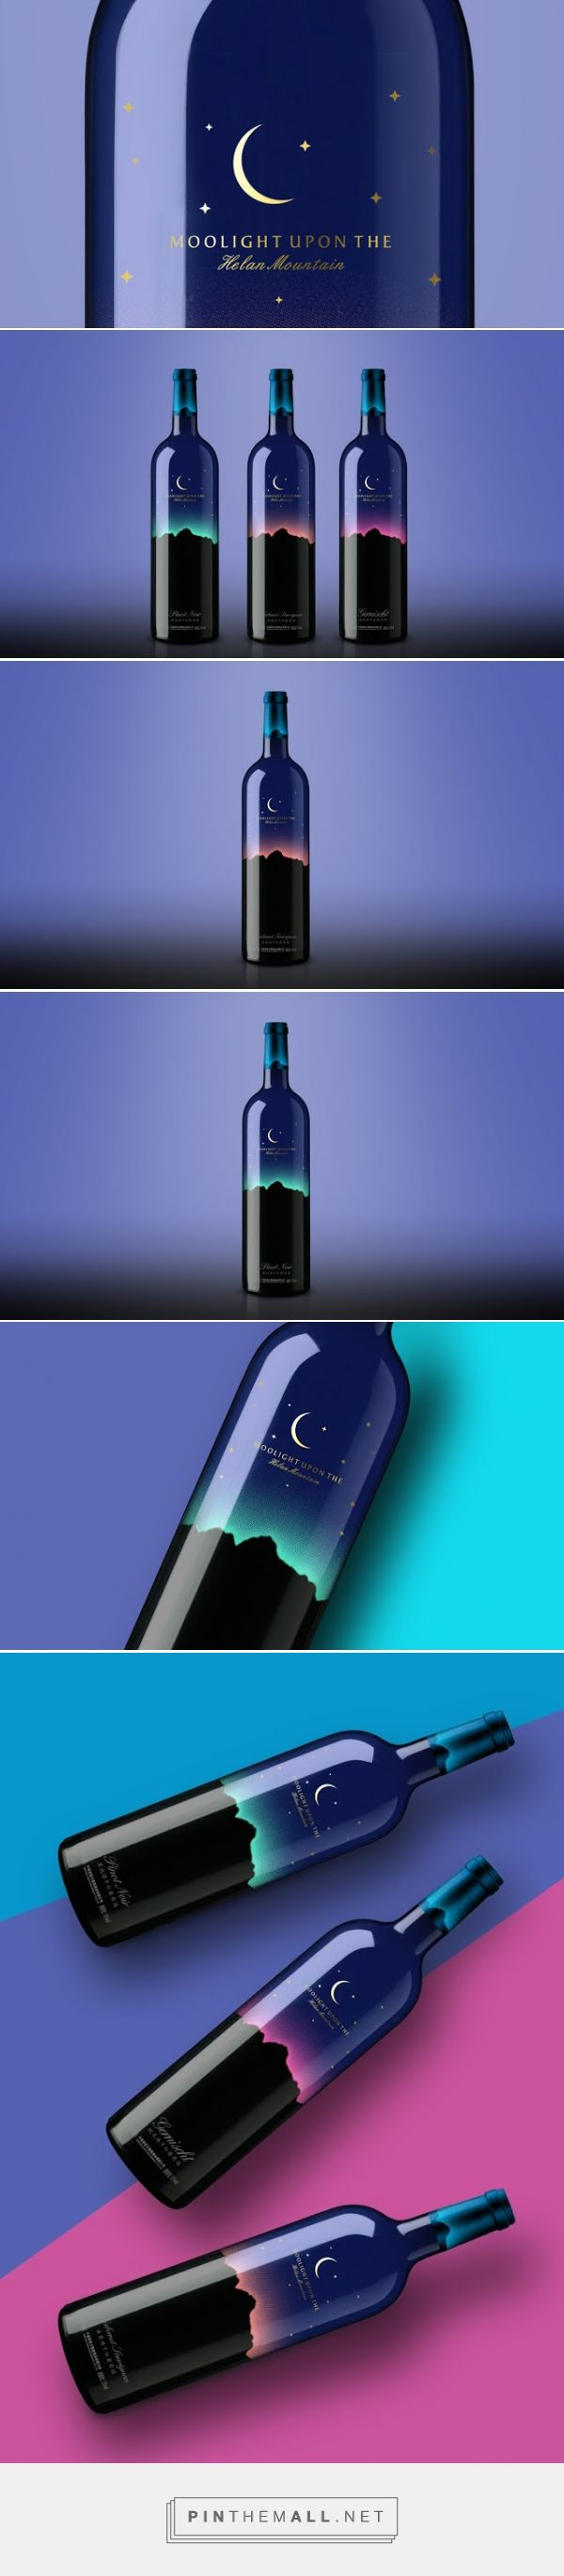 Agency: Pesign Design Project Type: Produced, Commercial Work Packaging Content: Wine Location: Shen Zhen, China  #taninotanino